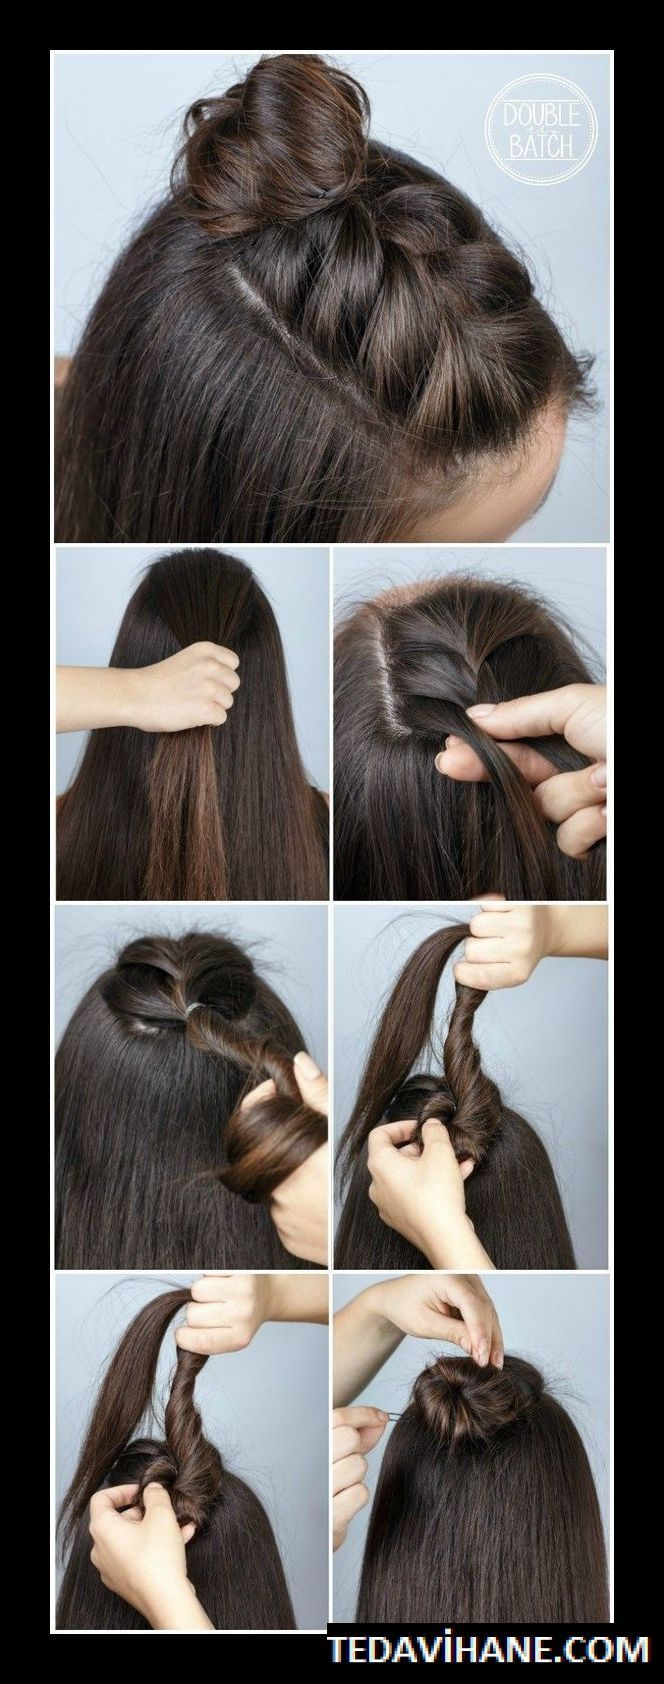 Hair Styles For School 22 Quick and Easy Back-to-School Hairstyle Tutorials